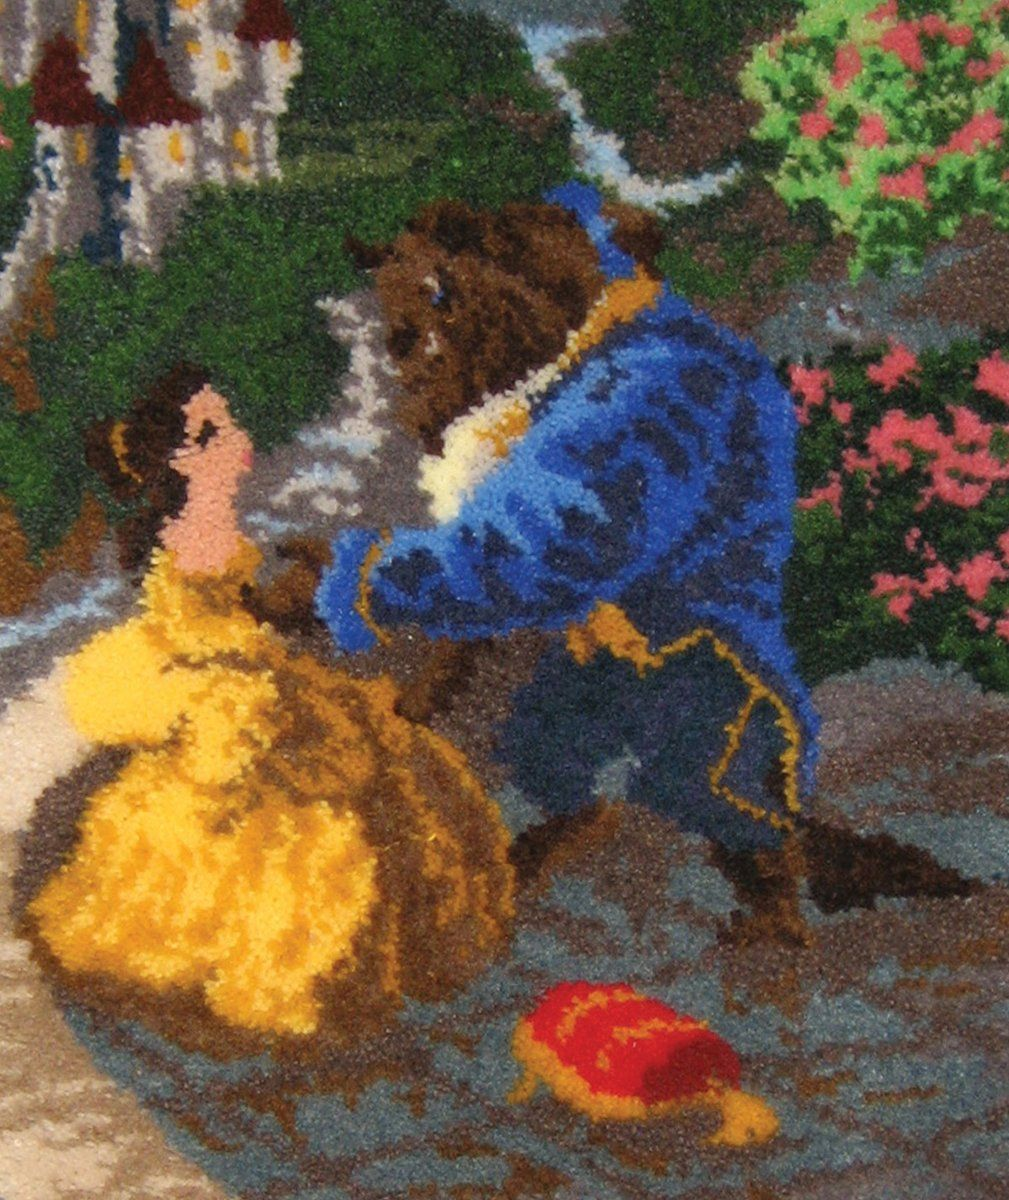 Mcg Textiles Beauty And The Beast Latch Hook Rug Kit 21 By 26 Inch